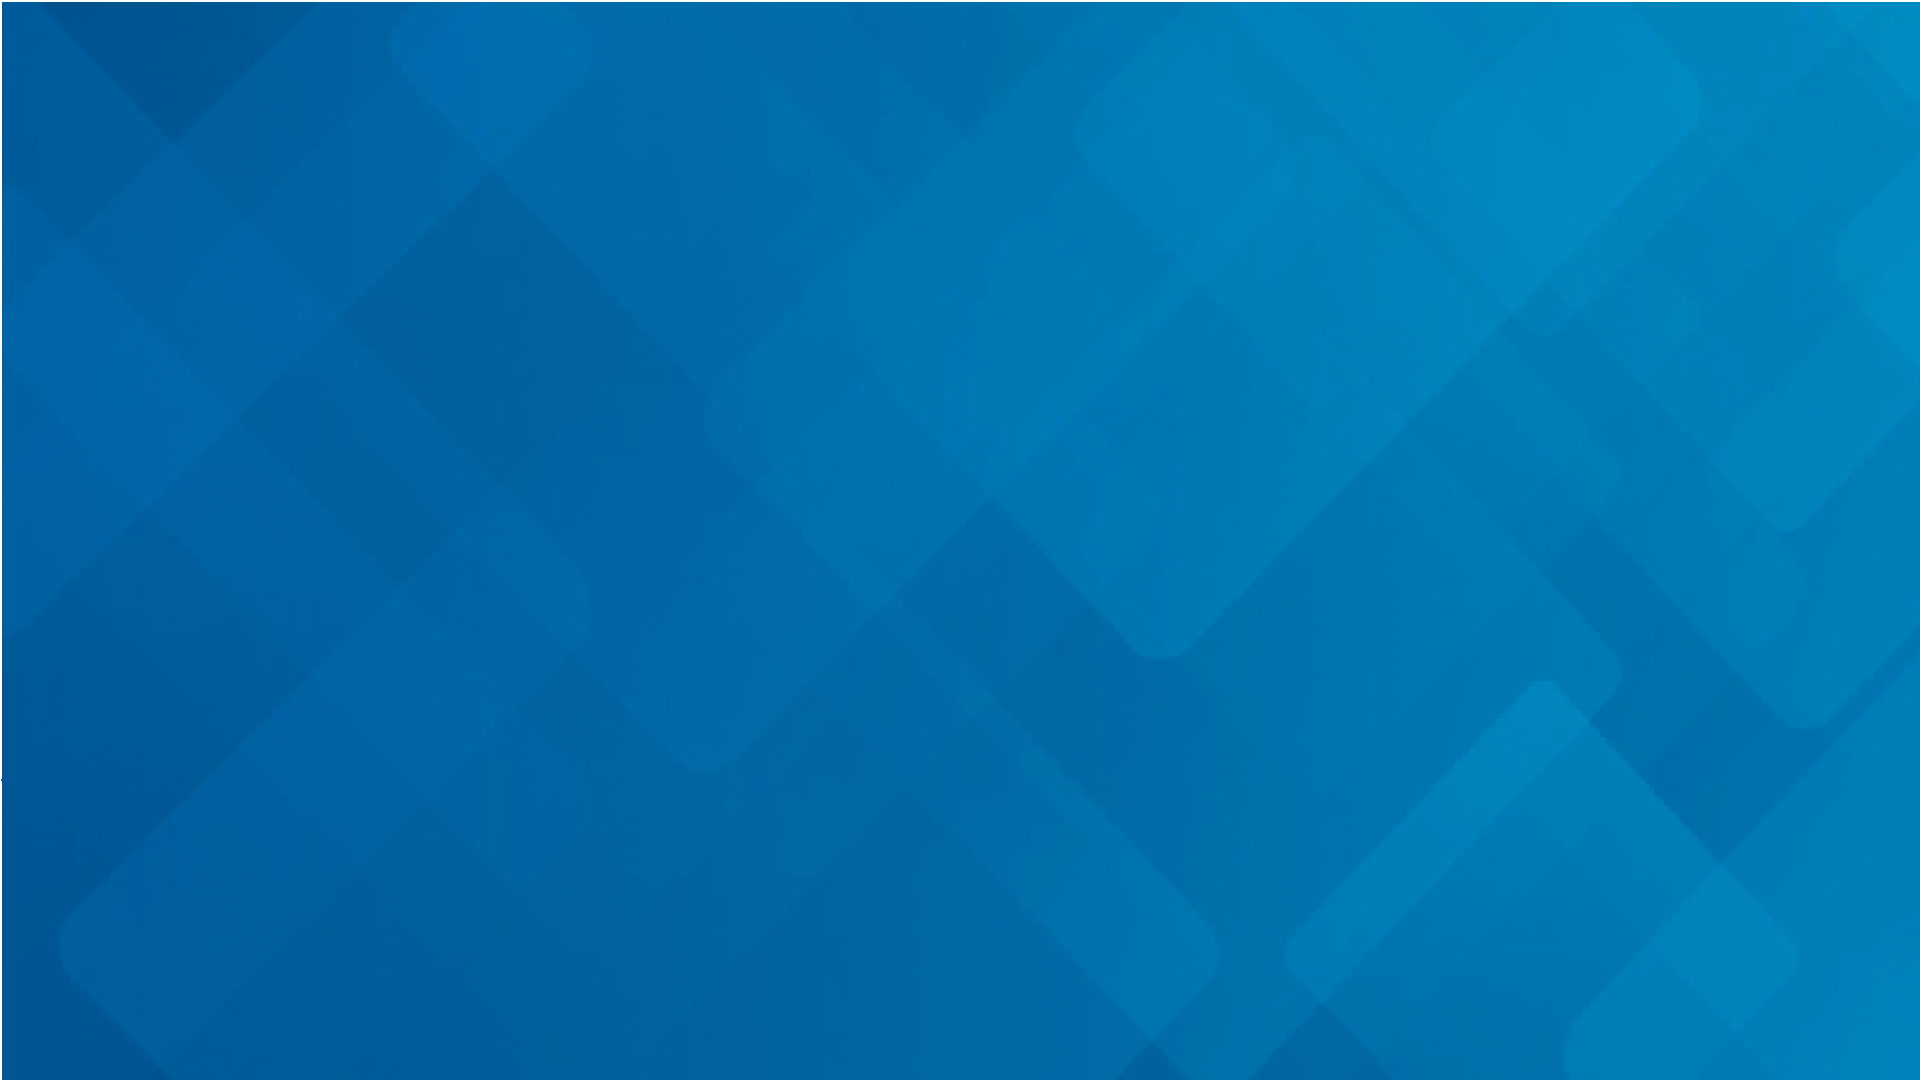 Where can I find the official Dell wallpaper    Dell Community